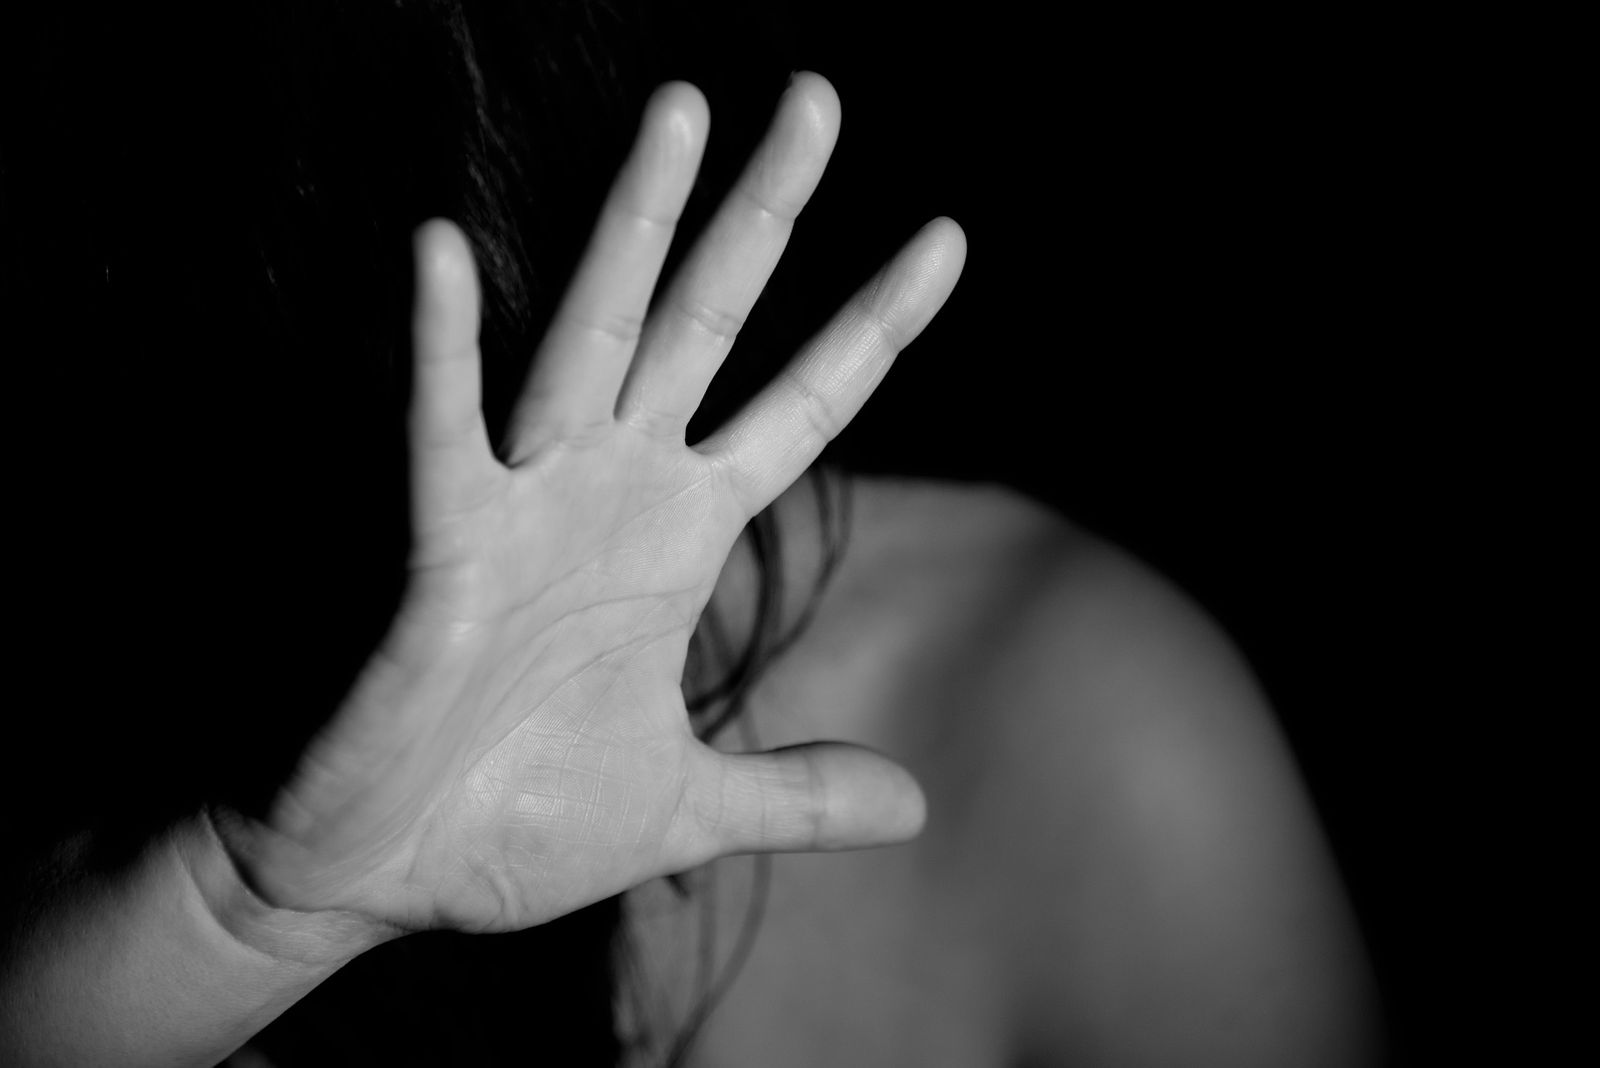 Reflected trauma: The facts I've faced documenting domestic violence